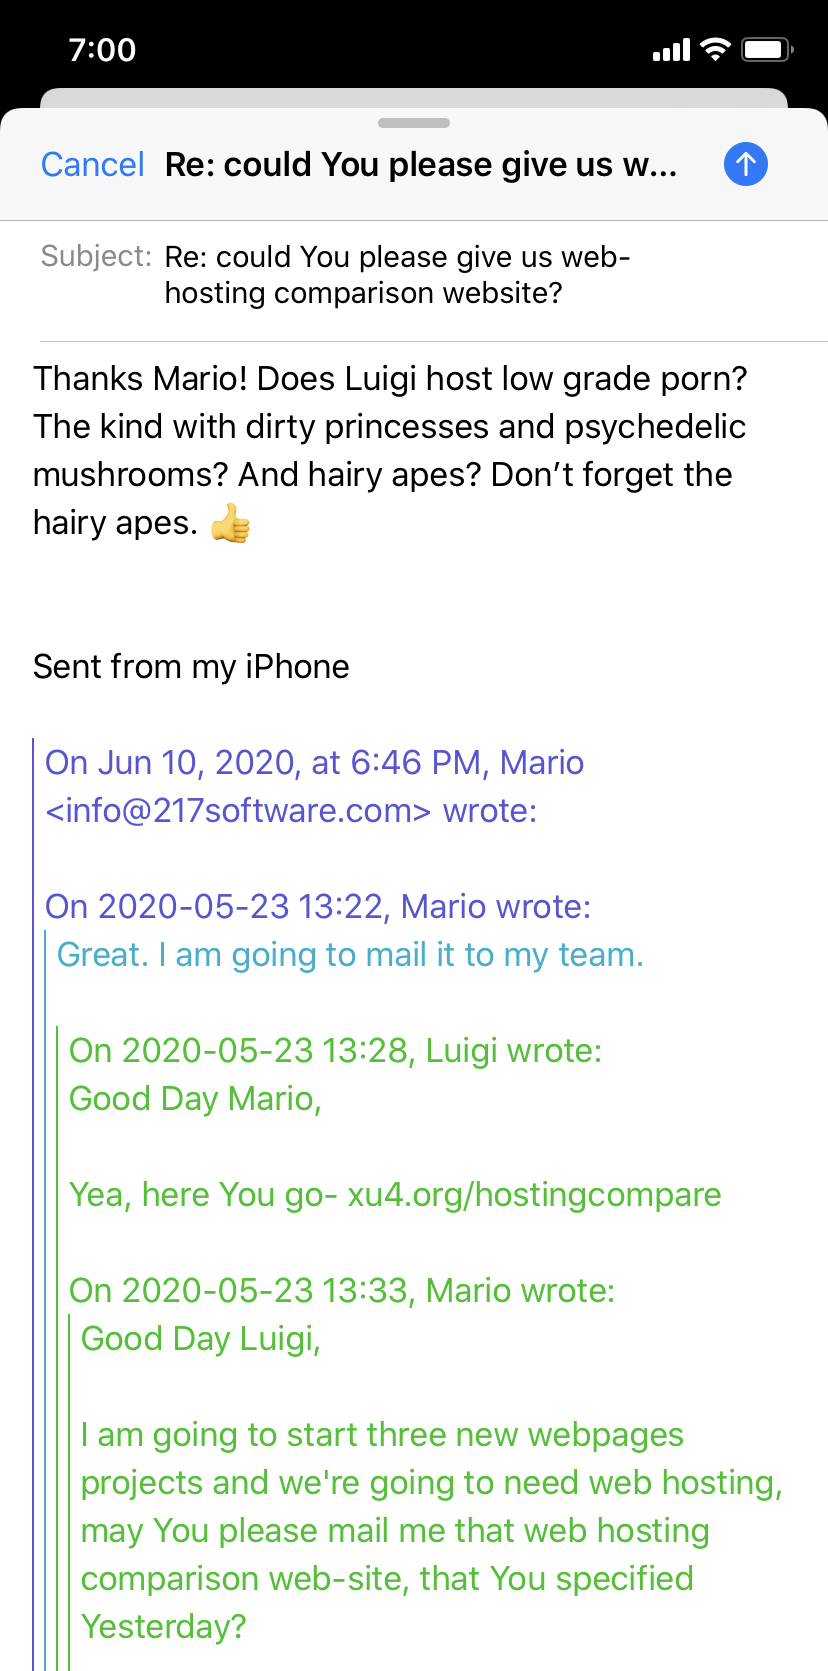 Email from Mario and Luigi